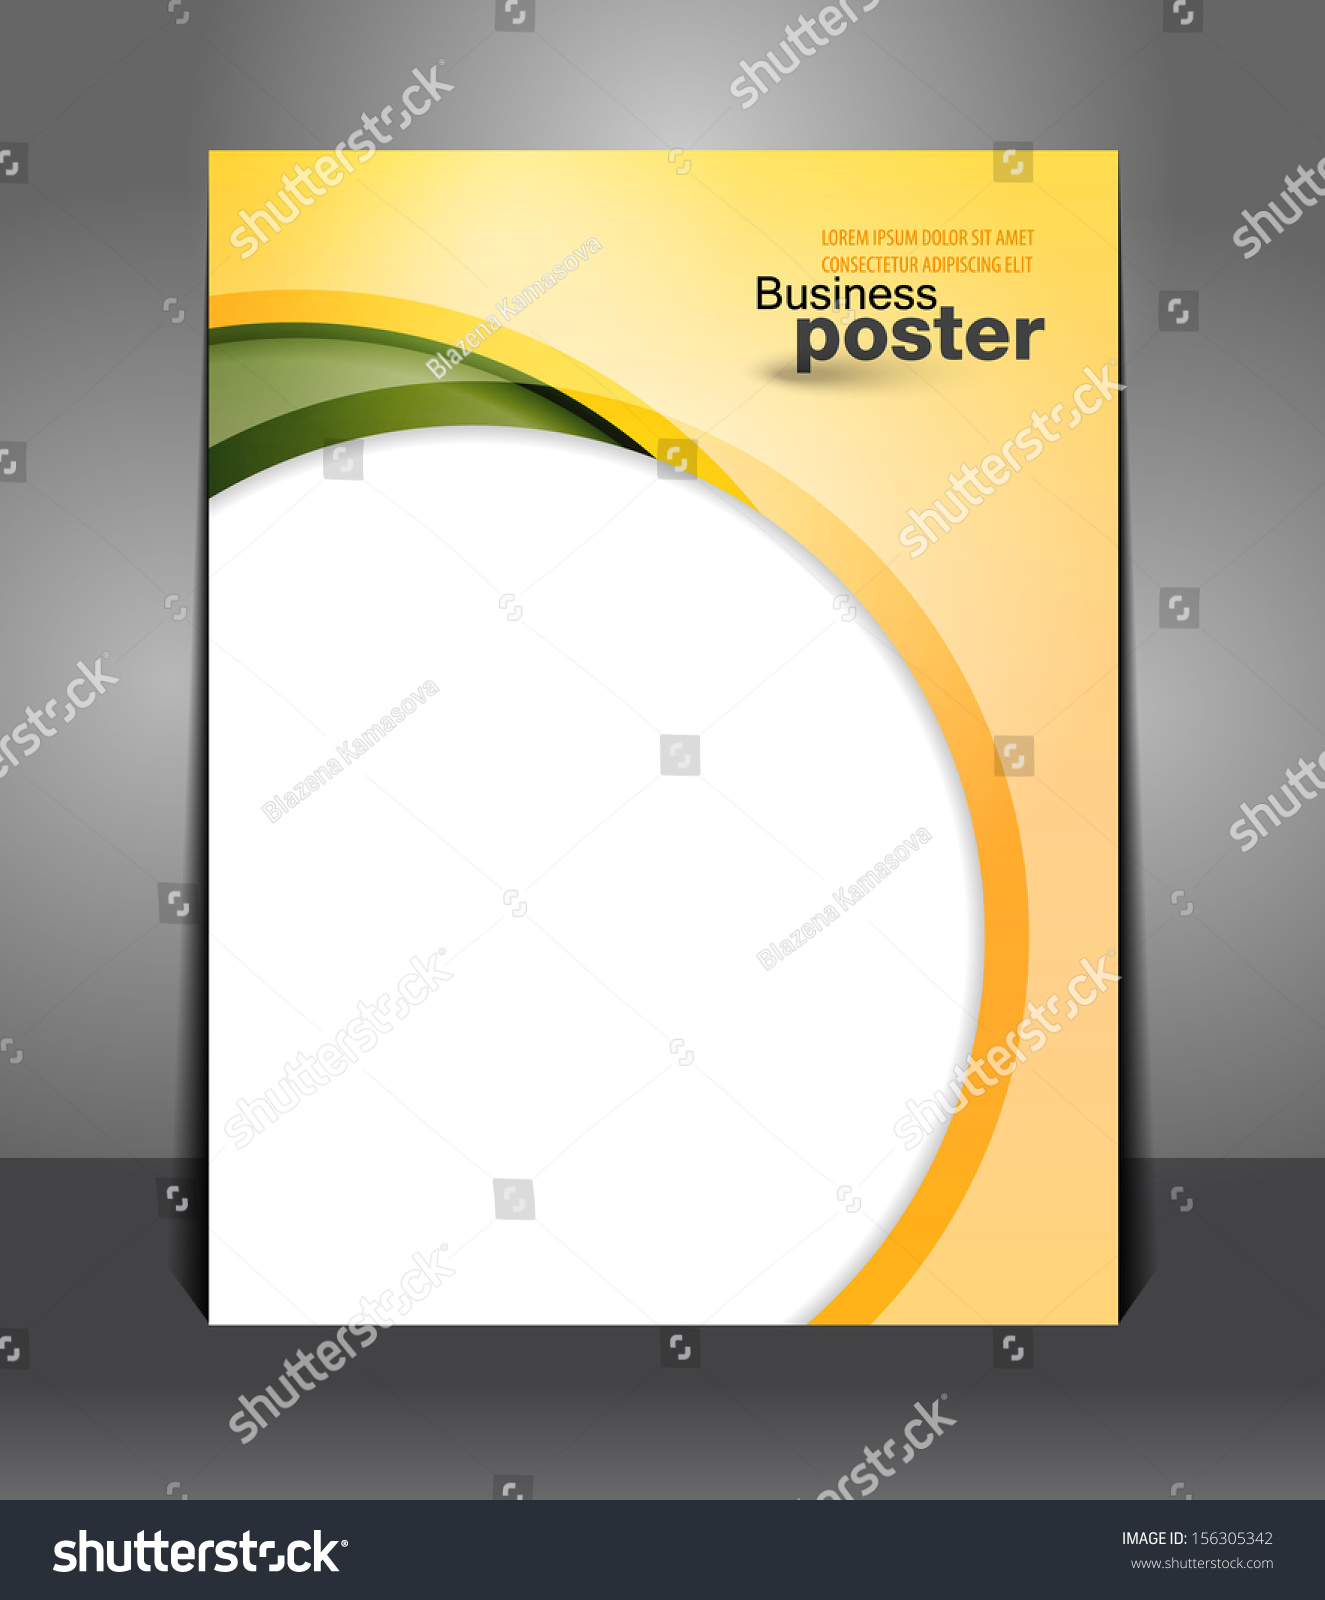 magazine cover ideas picture frame - Stylish Presentation Business Poster Flyer Design Stock